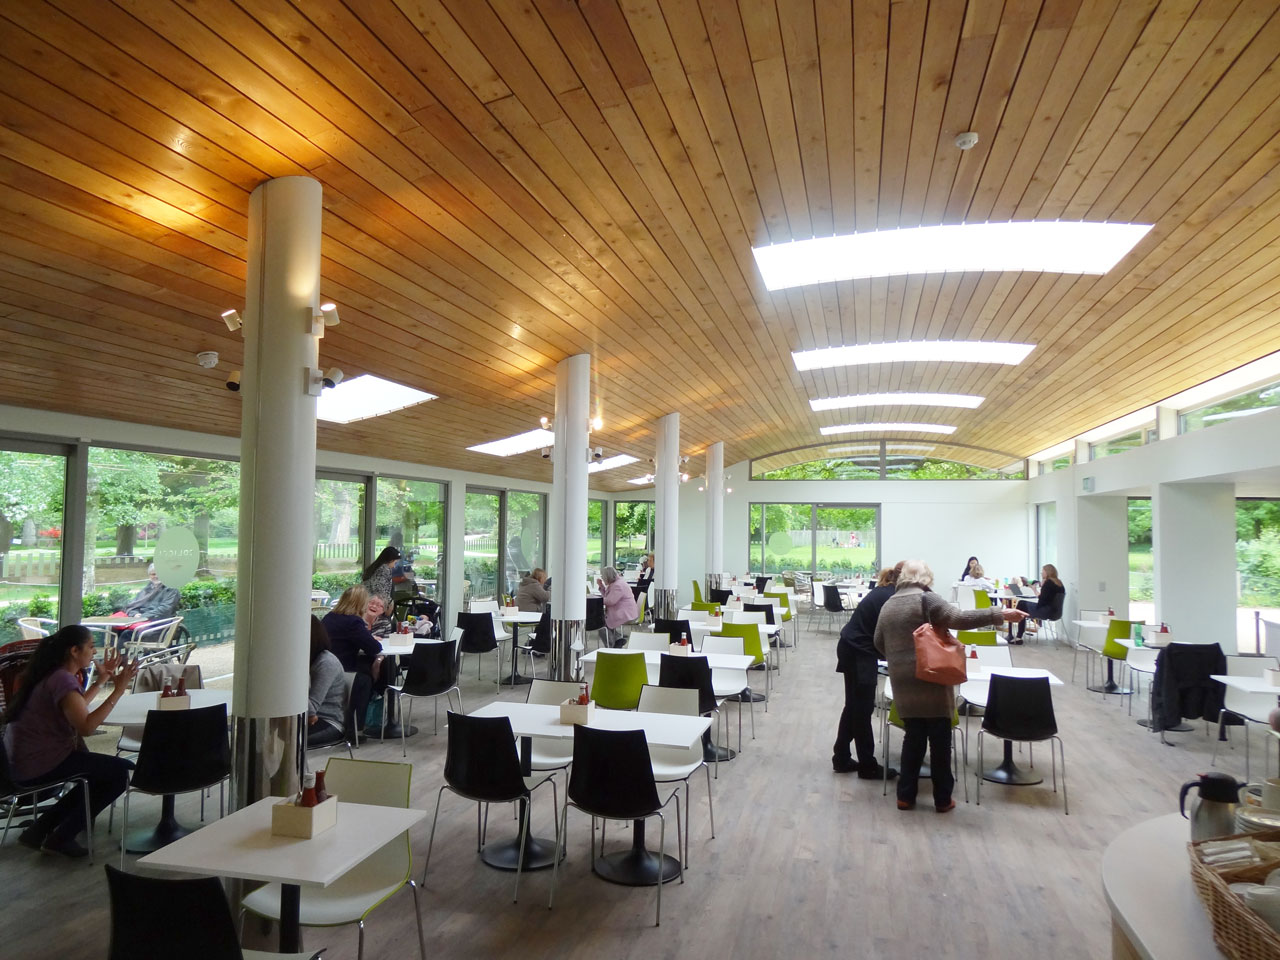 The Pheasantry Cafe in Richmond Planning